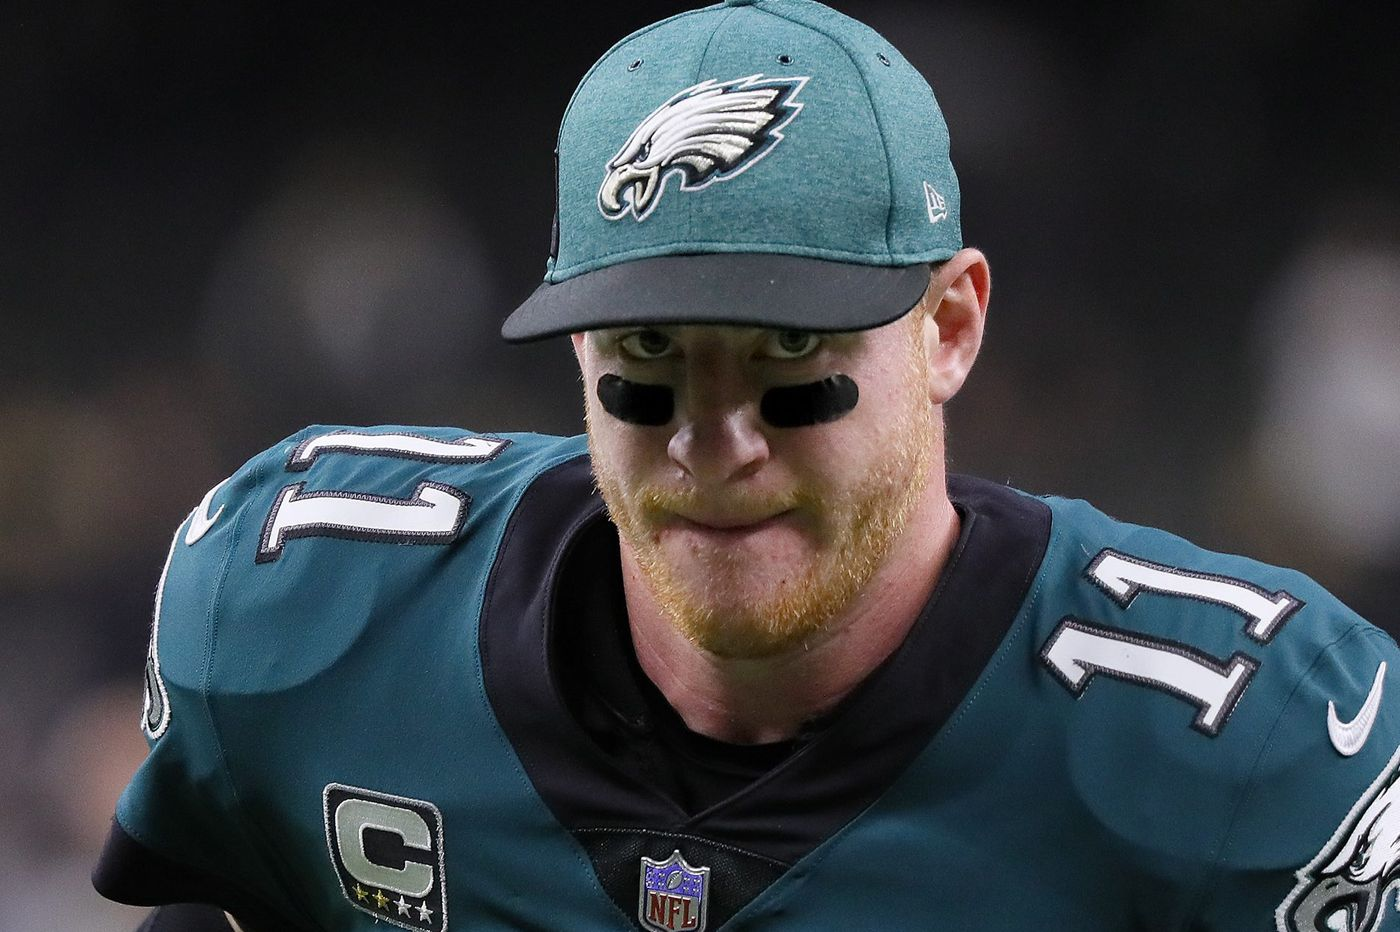 Eagles quarterback Carson Wentz reflects on challenging year, recent criticism: 'I know I'm not perfect'